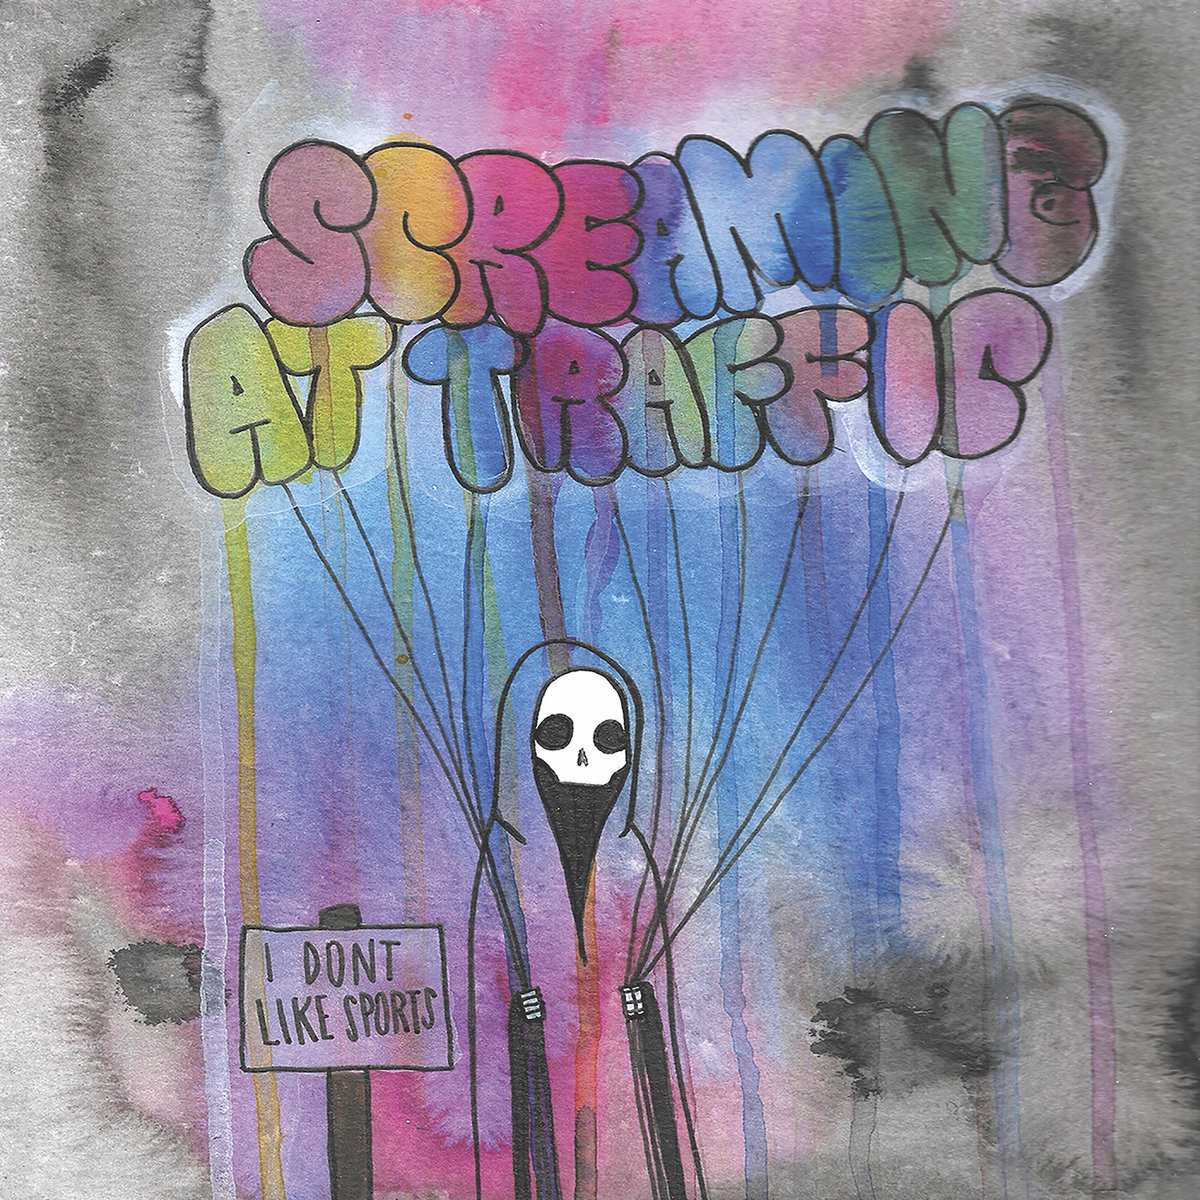 I Dont Like Sports - Screaming At Traffic